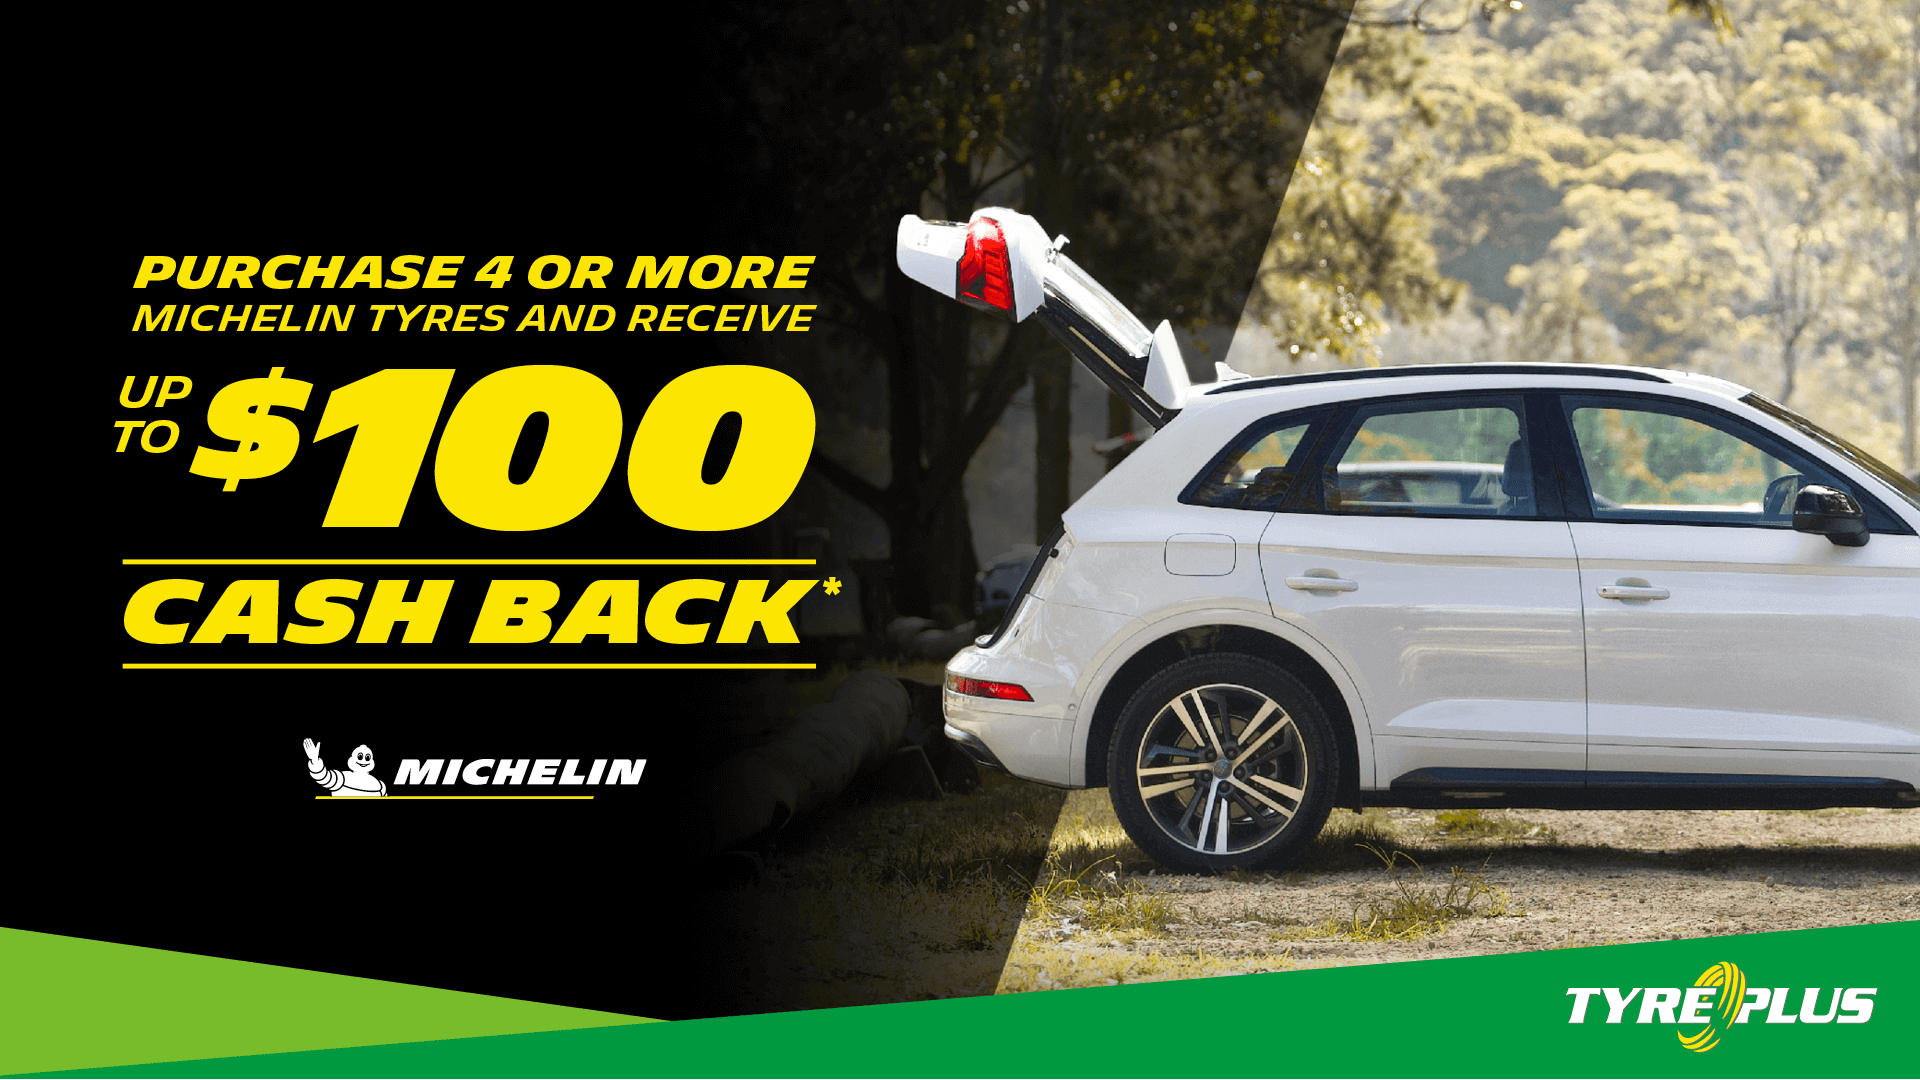 Michelin April Cashback Promotion